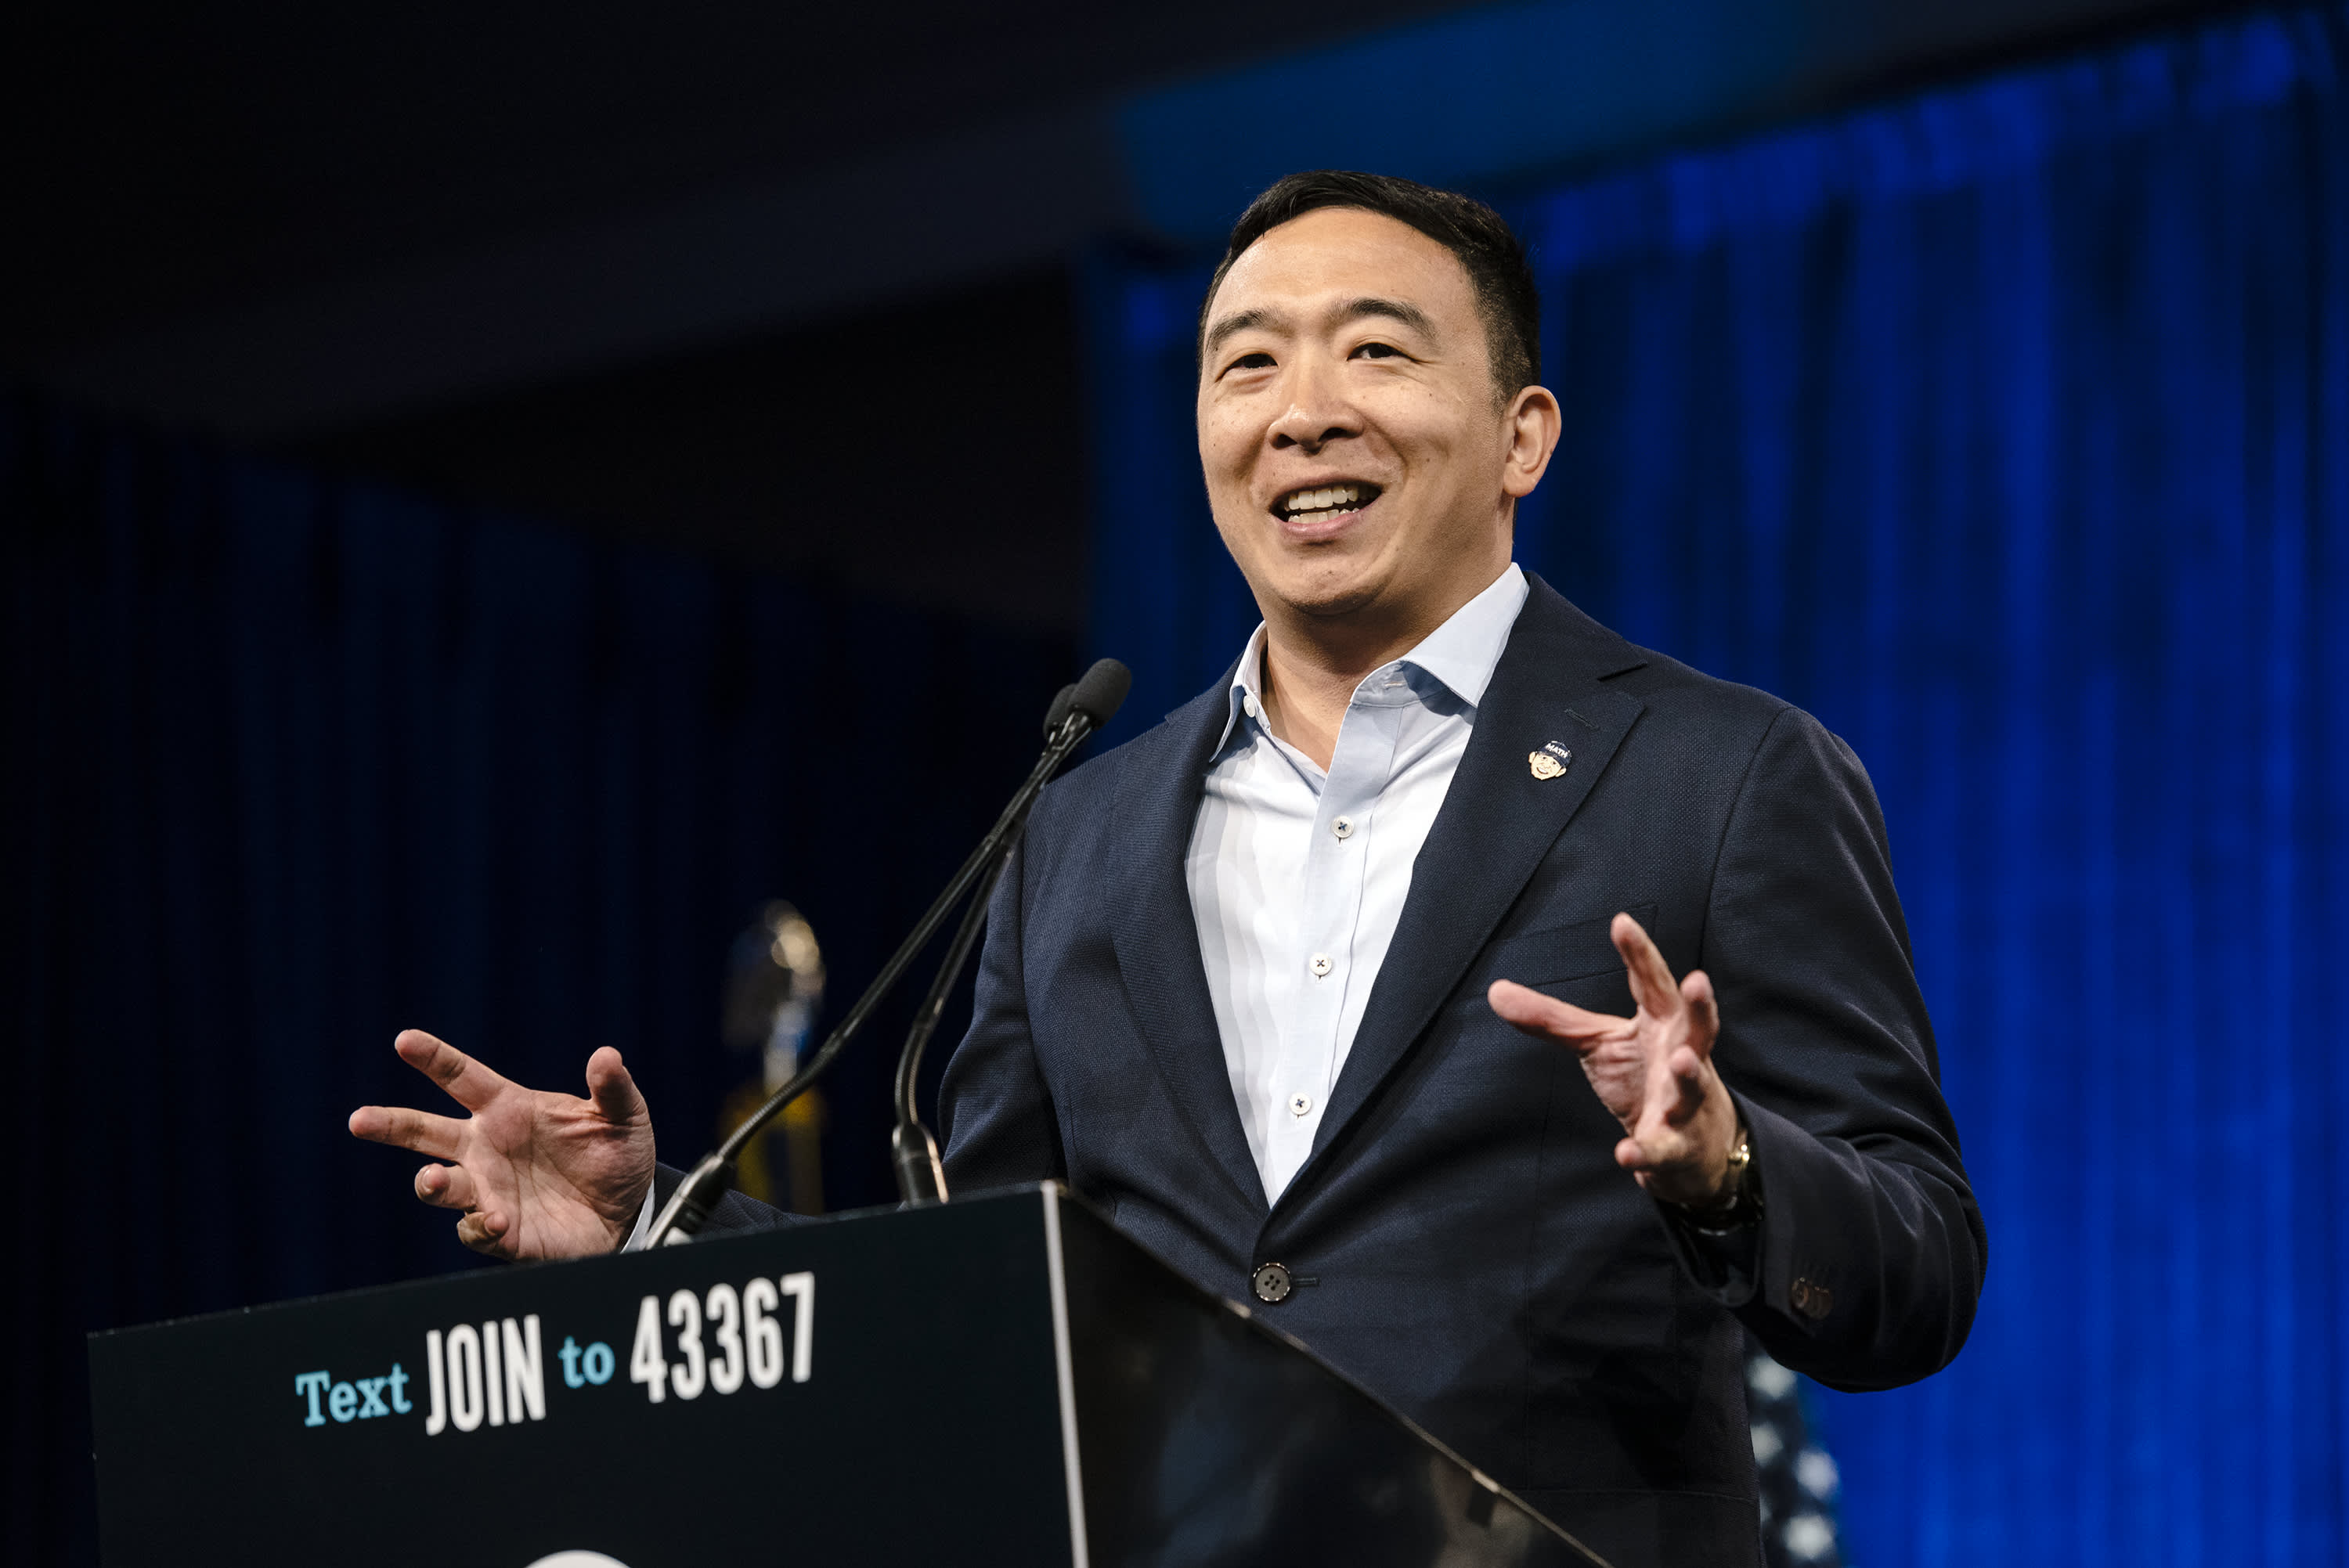 Andrew Yang says the wealth tax proposals from Sanders and Warren could be a 'disaster in practice'